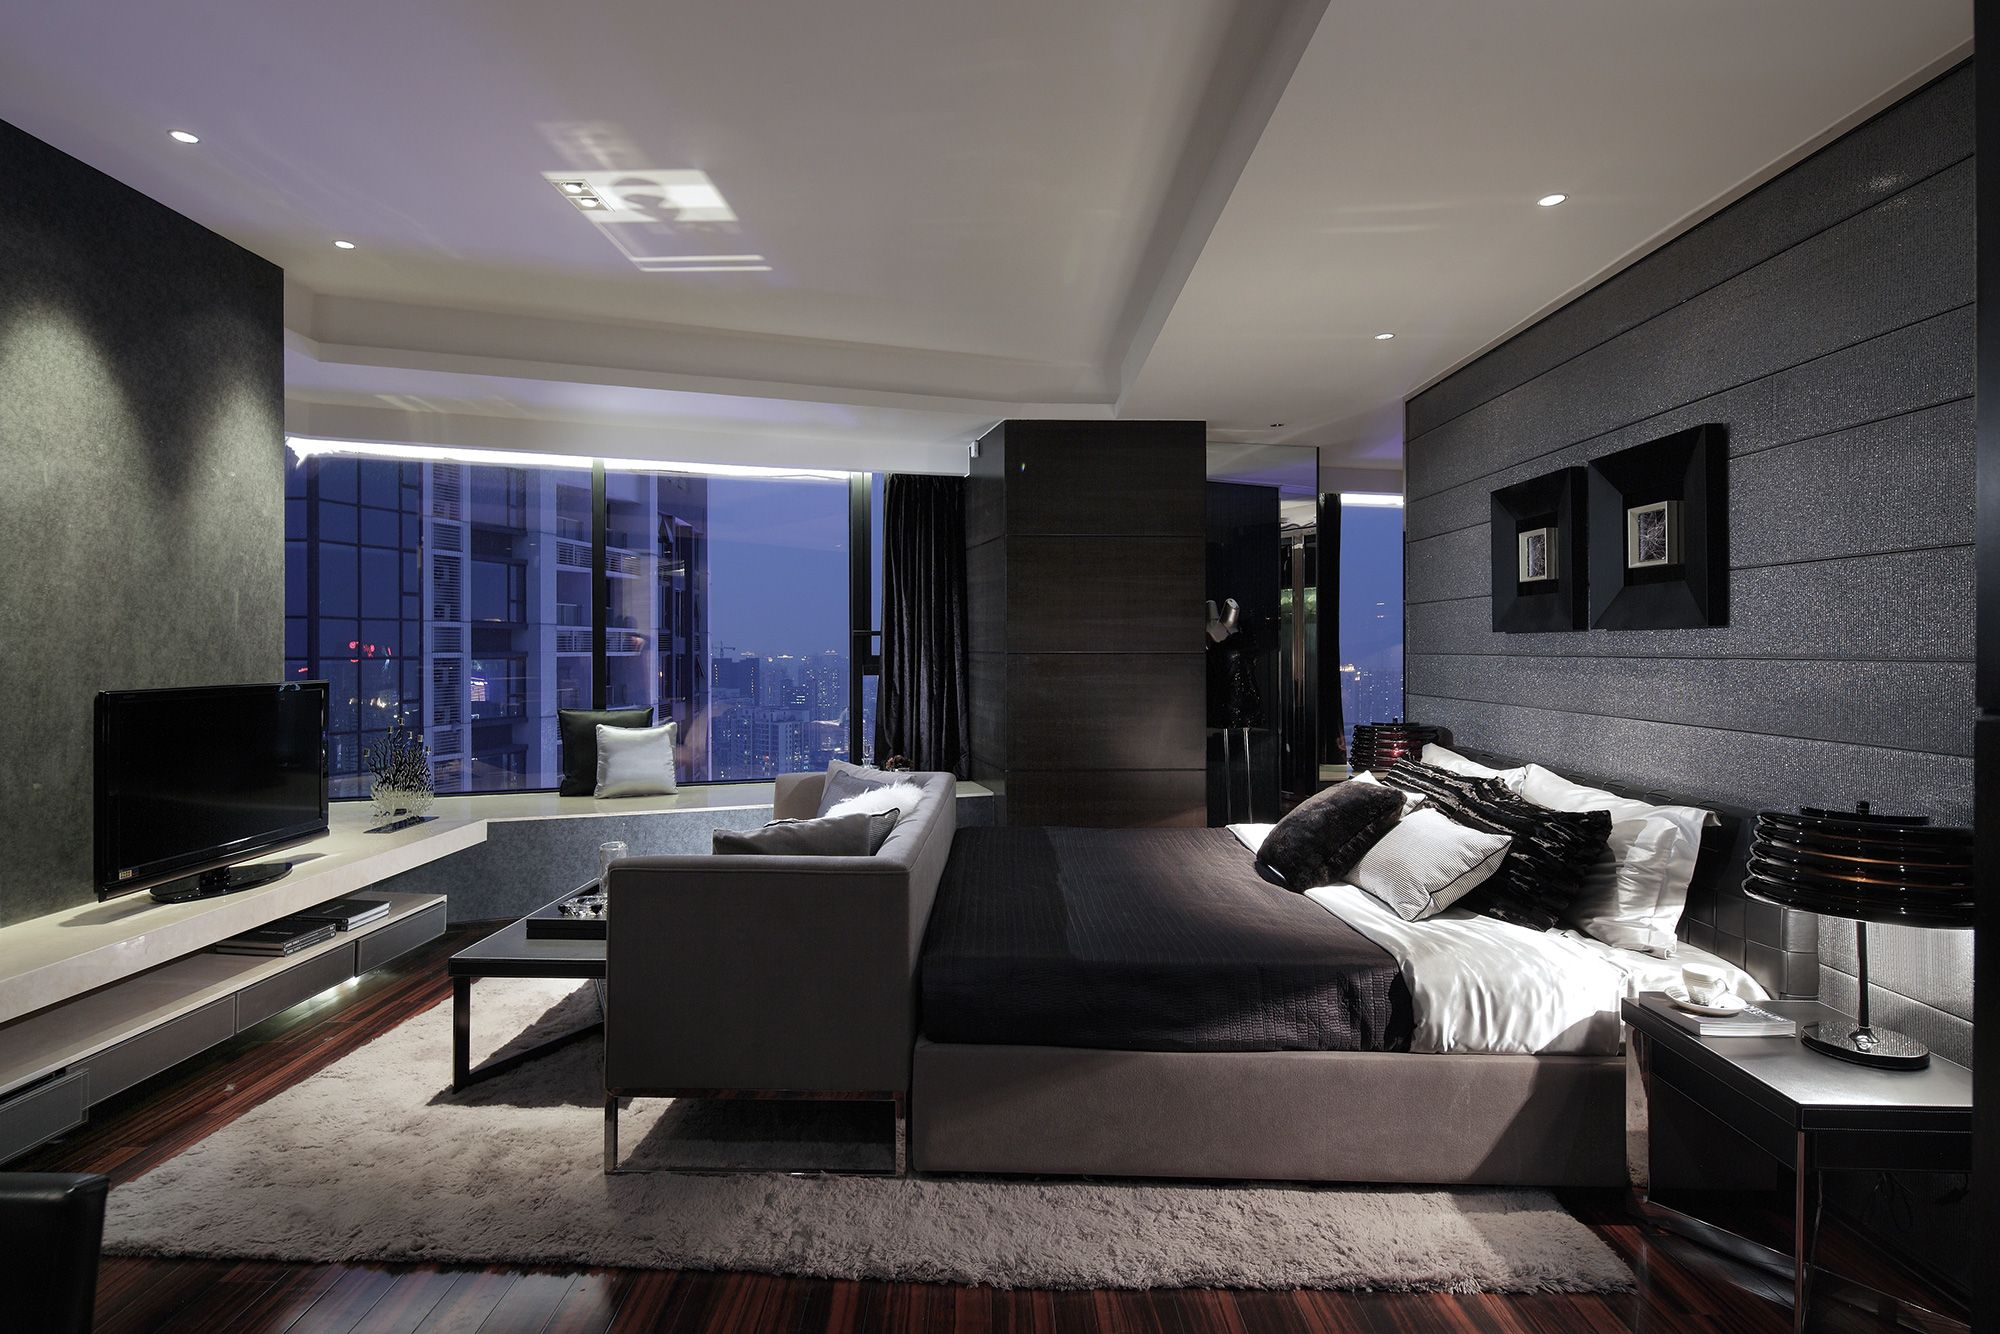 5 Mens Bachelor Pad Decor Ideas For A Modern Look House And intended for Mens Modern Bedroom